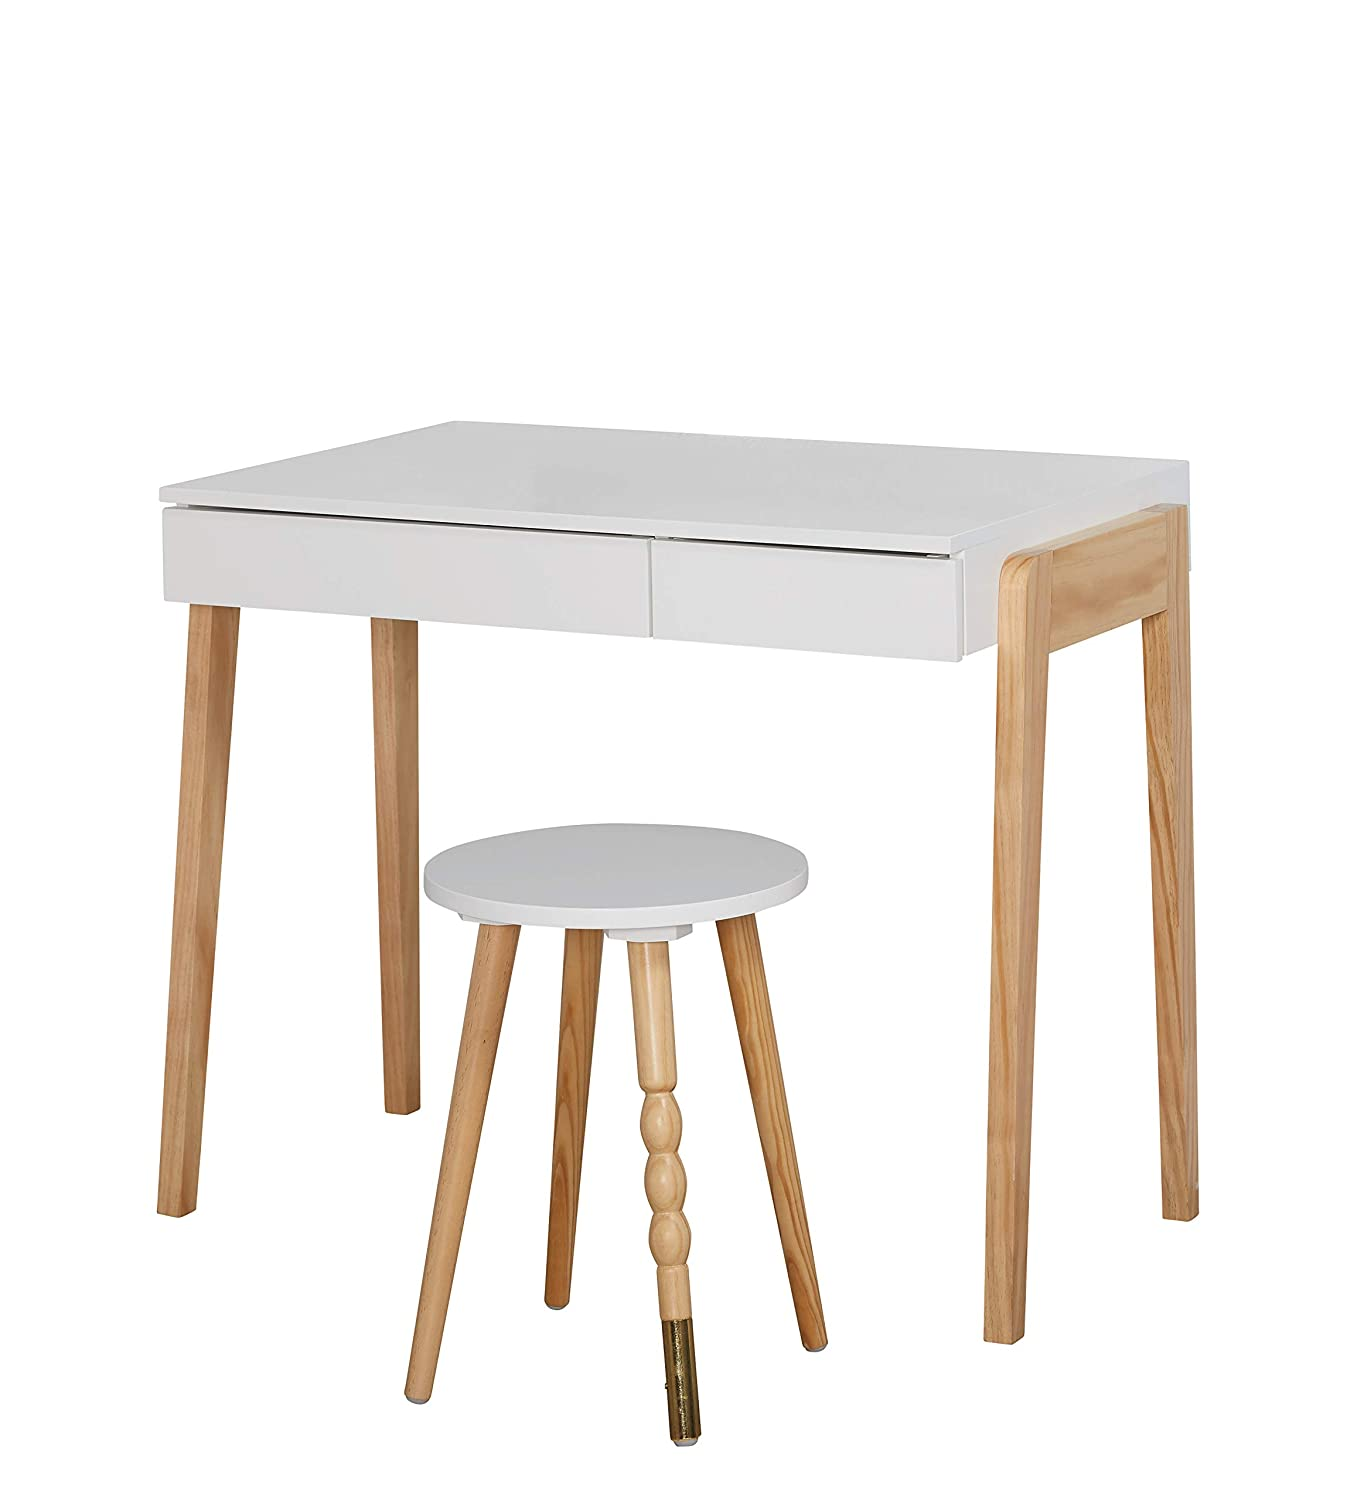 The Mezzanine Shoppe Riley Modern Two Tone Home Office Desk and Stool Set, 2 Piece, White